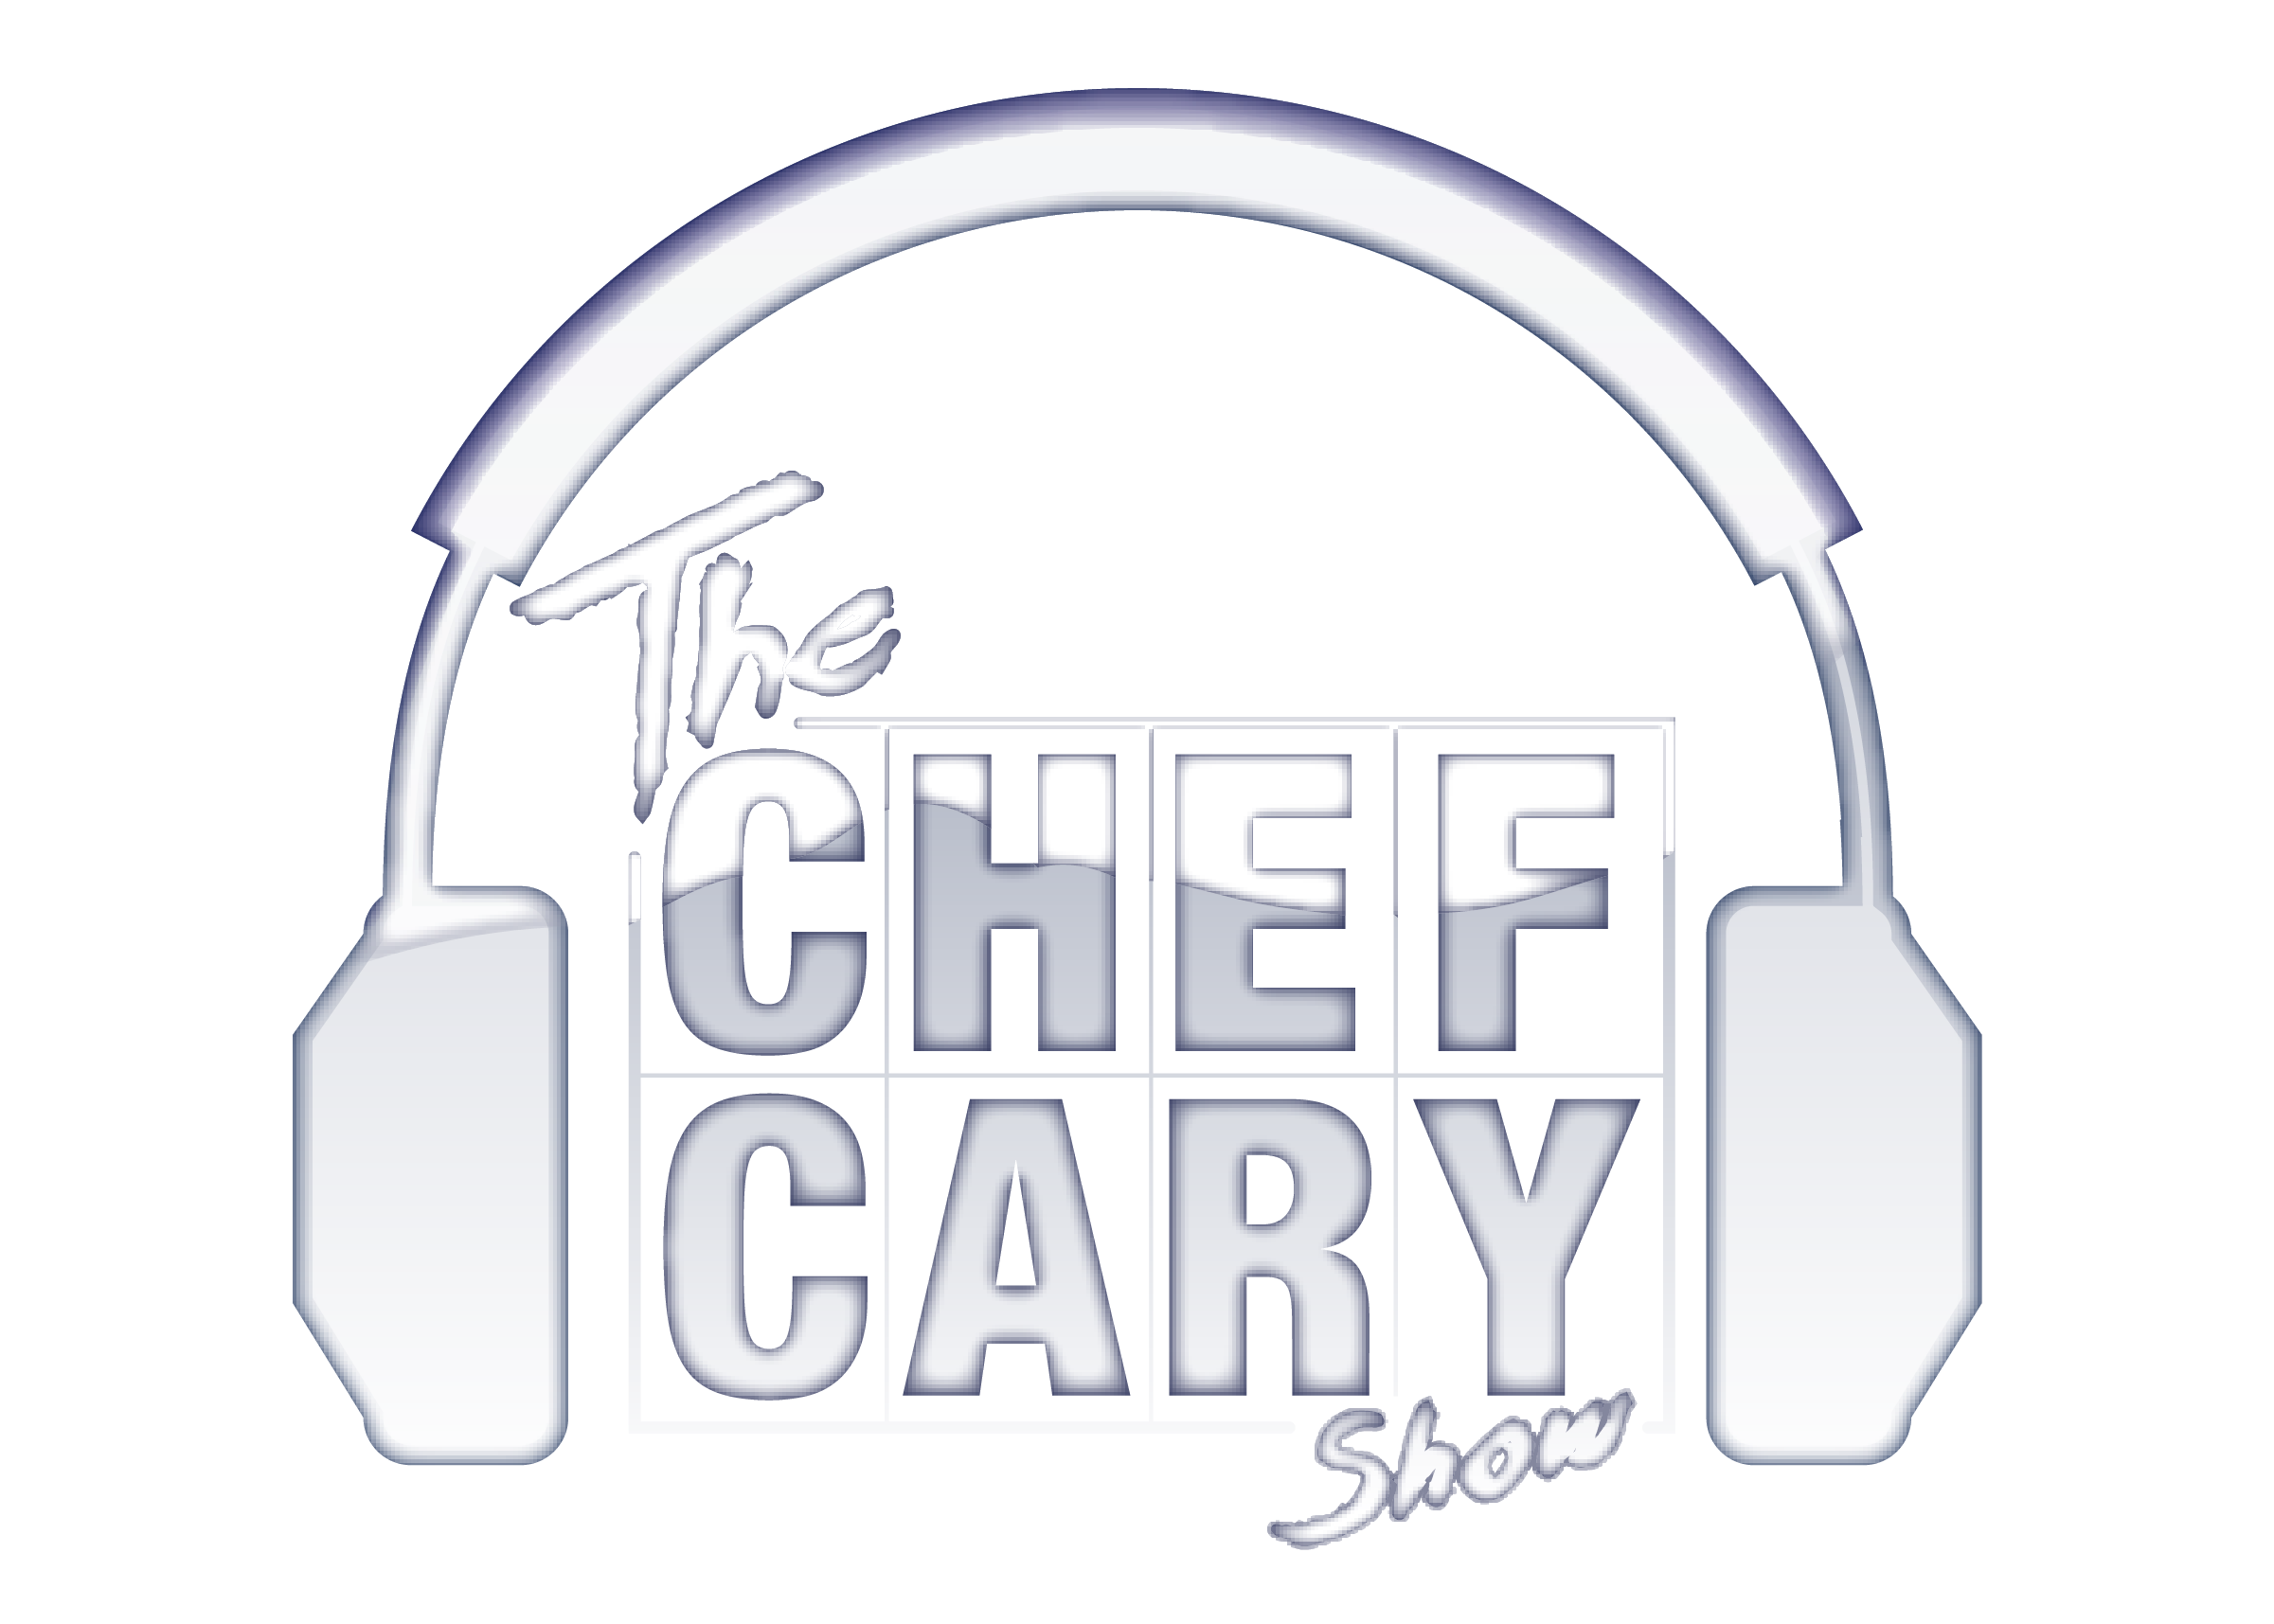 the chef cary show-03.png